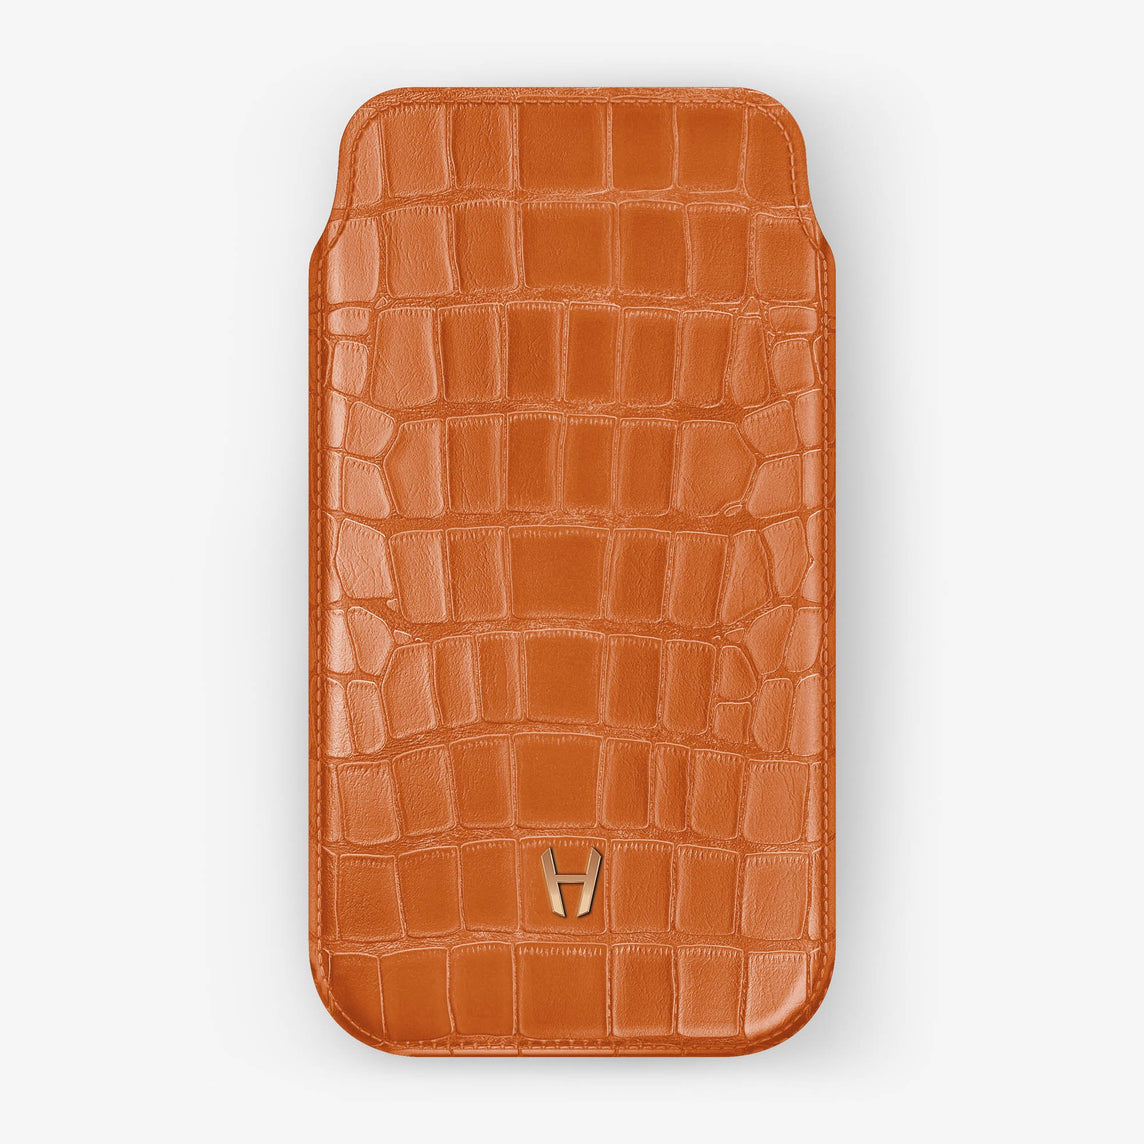 Alligator [iPhone Sleeve Case] [model:iphone-xsmax-case] [colour:orange] [finishing:rose-gold]